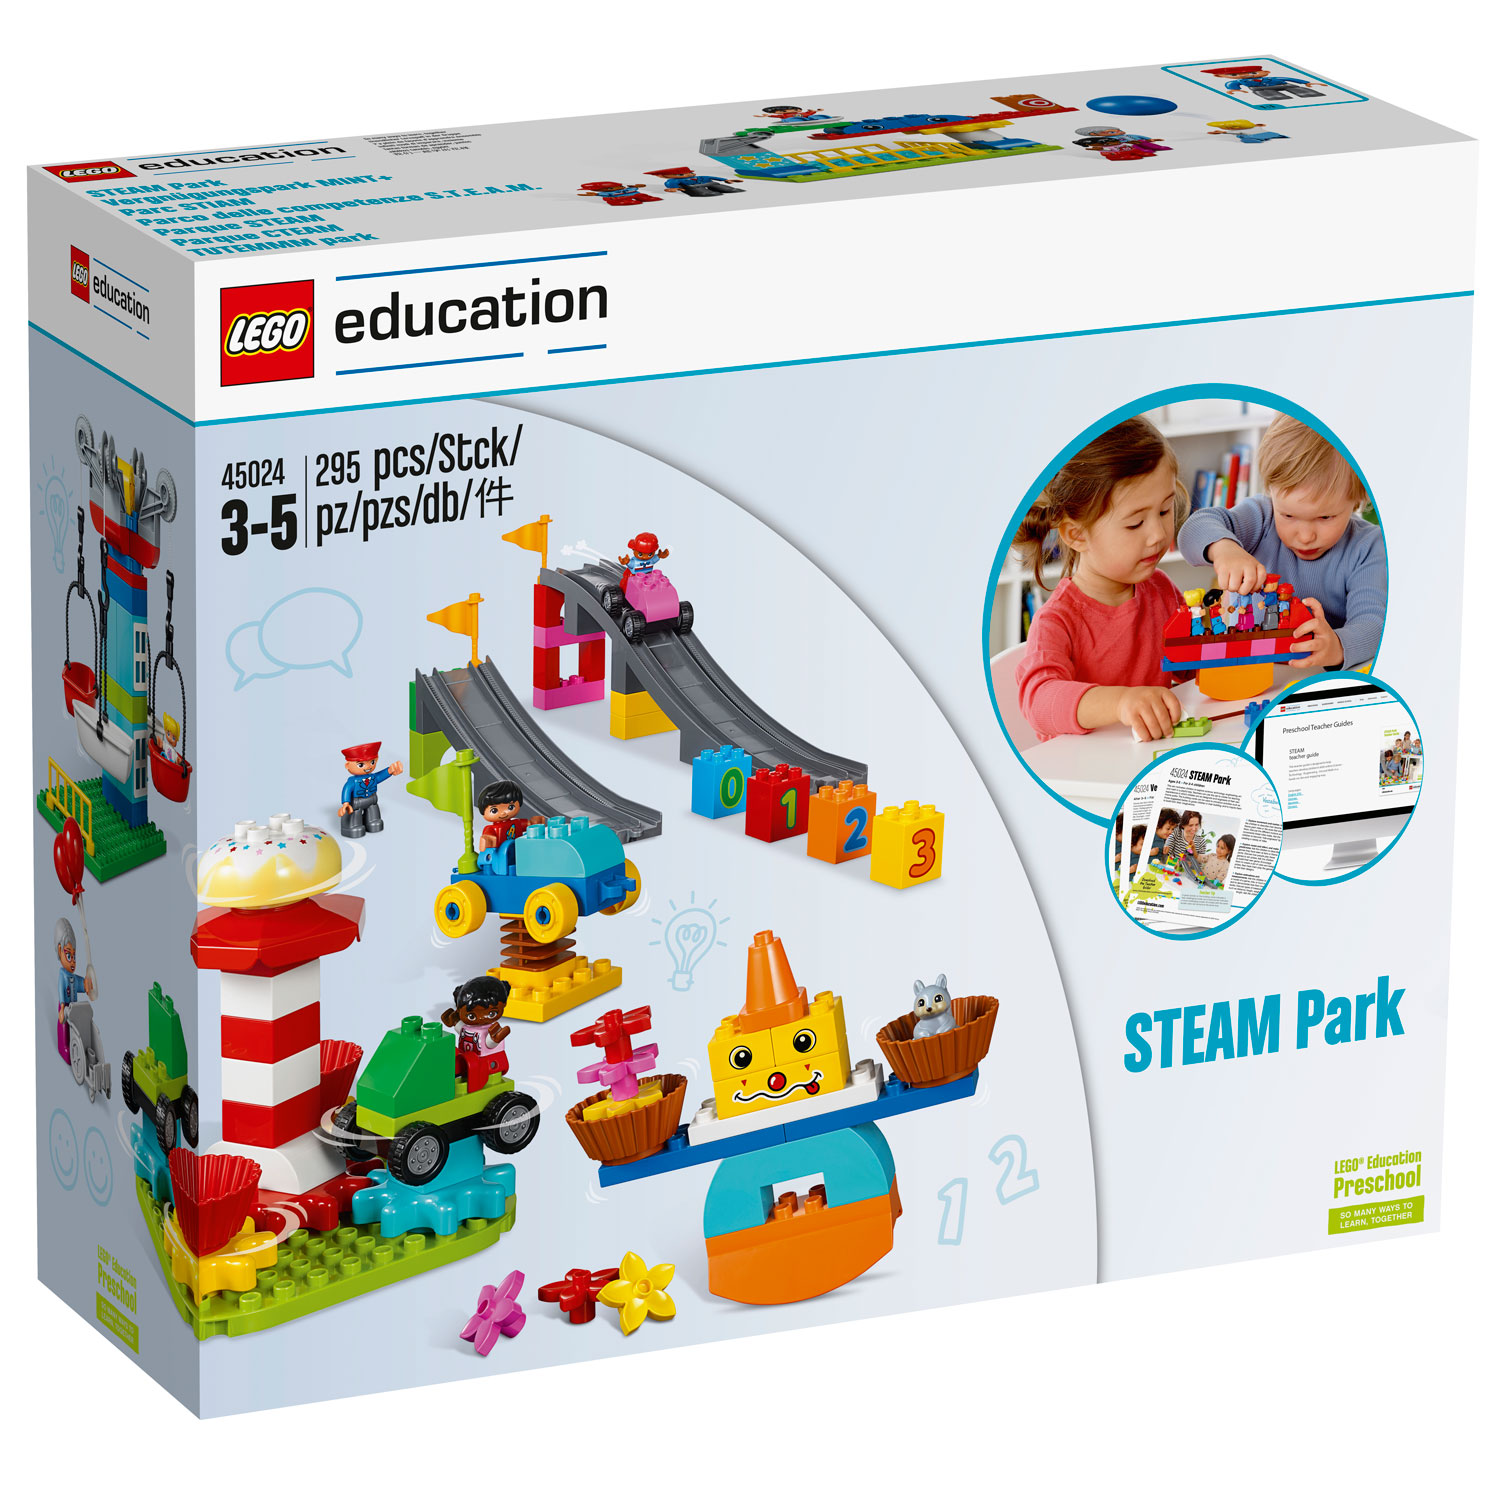 STEAM-Park-box-image.jpg (1)